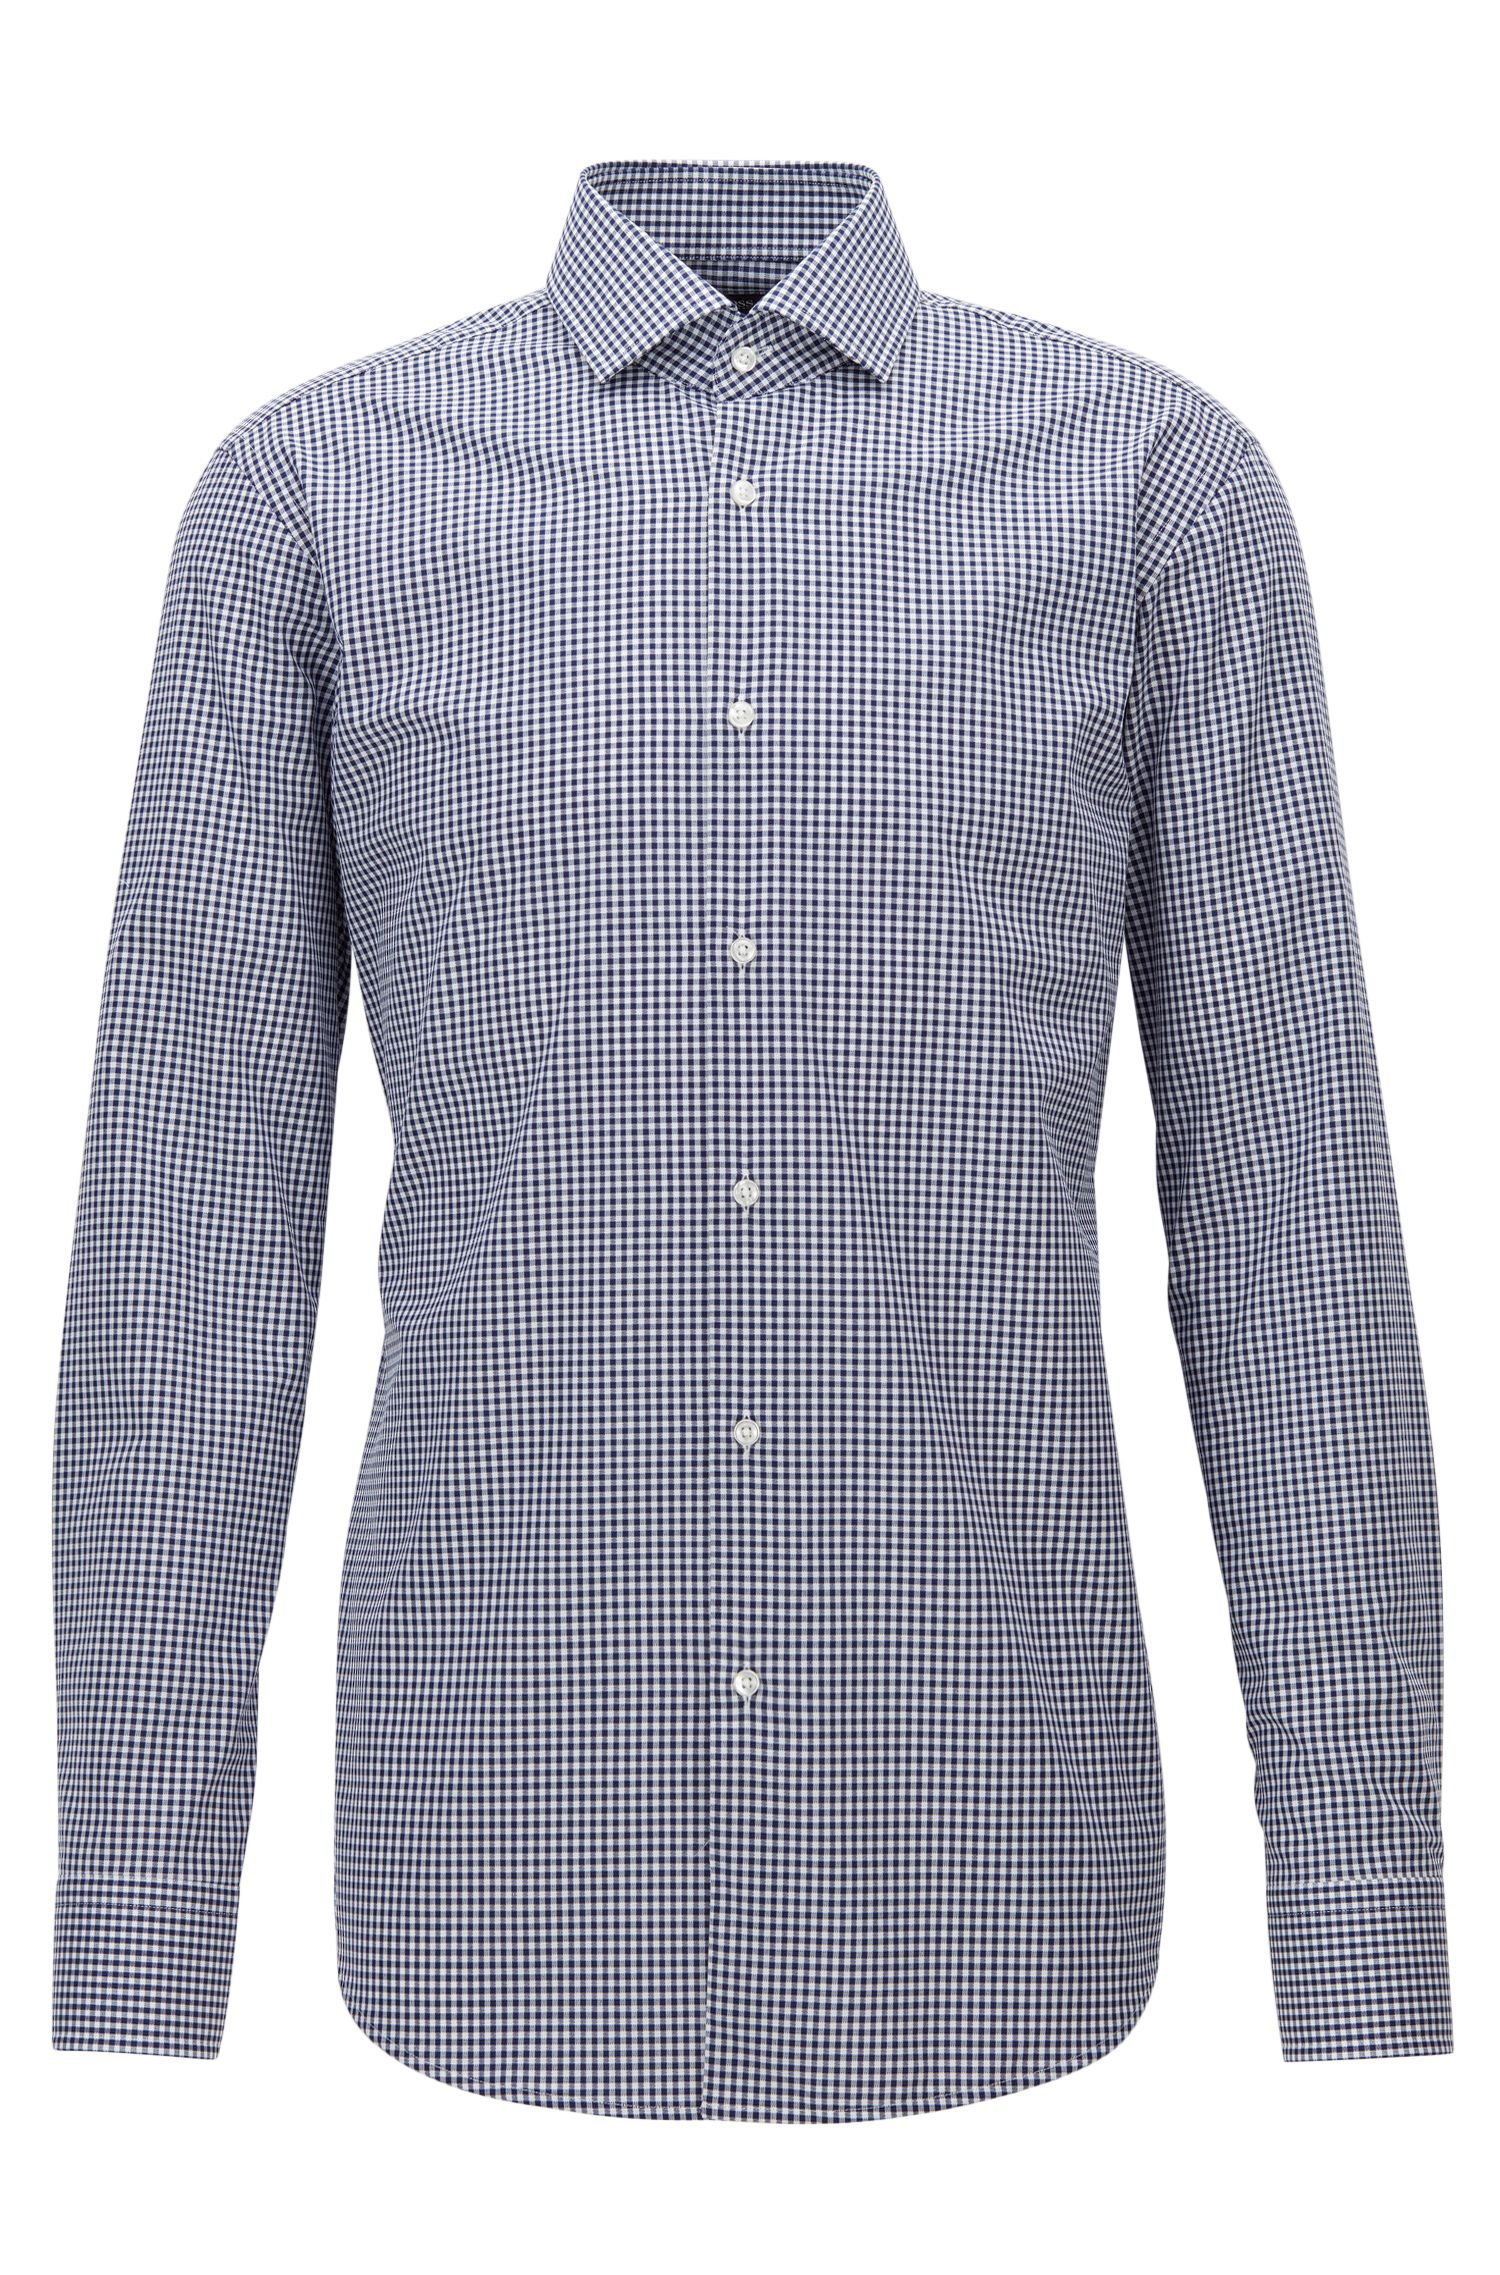 Vichy check easy-iron cotton shirt in a regular-fit